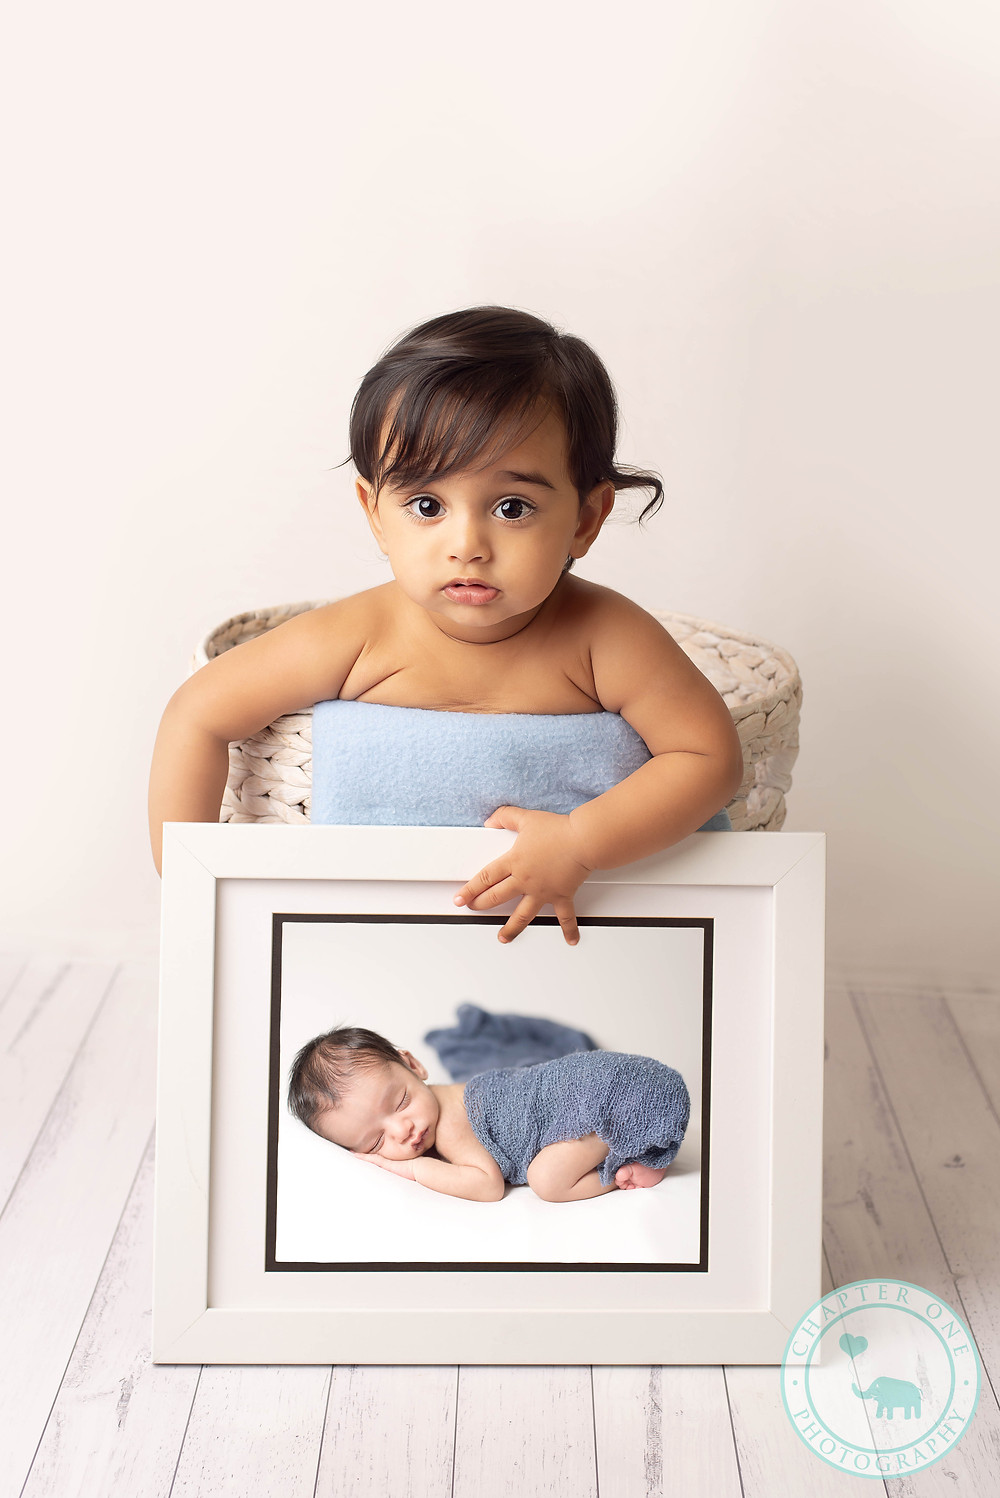 6 month boy with his newborn photograph